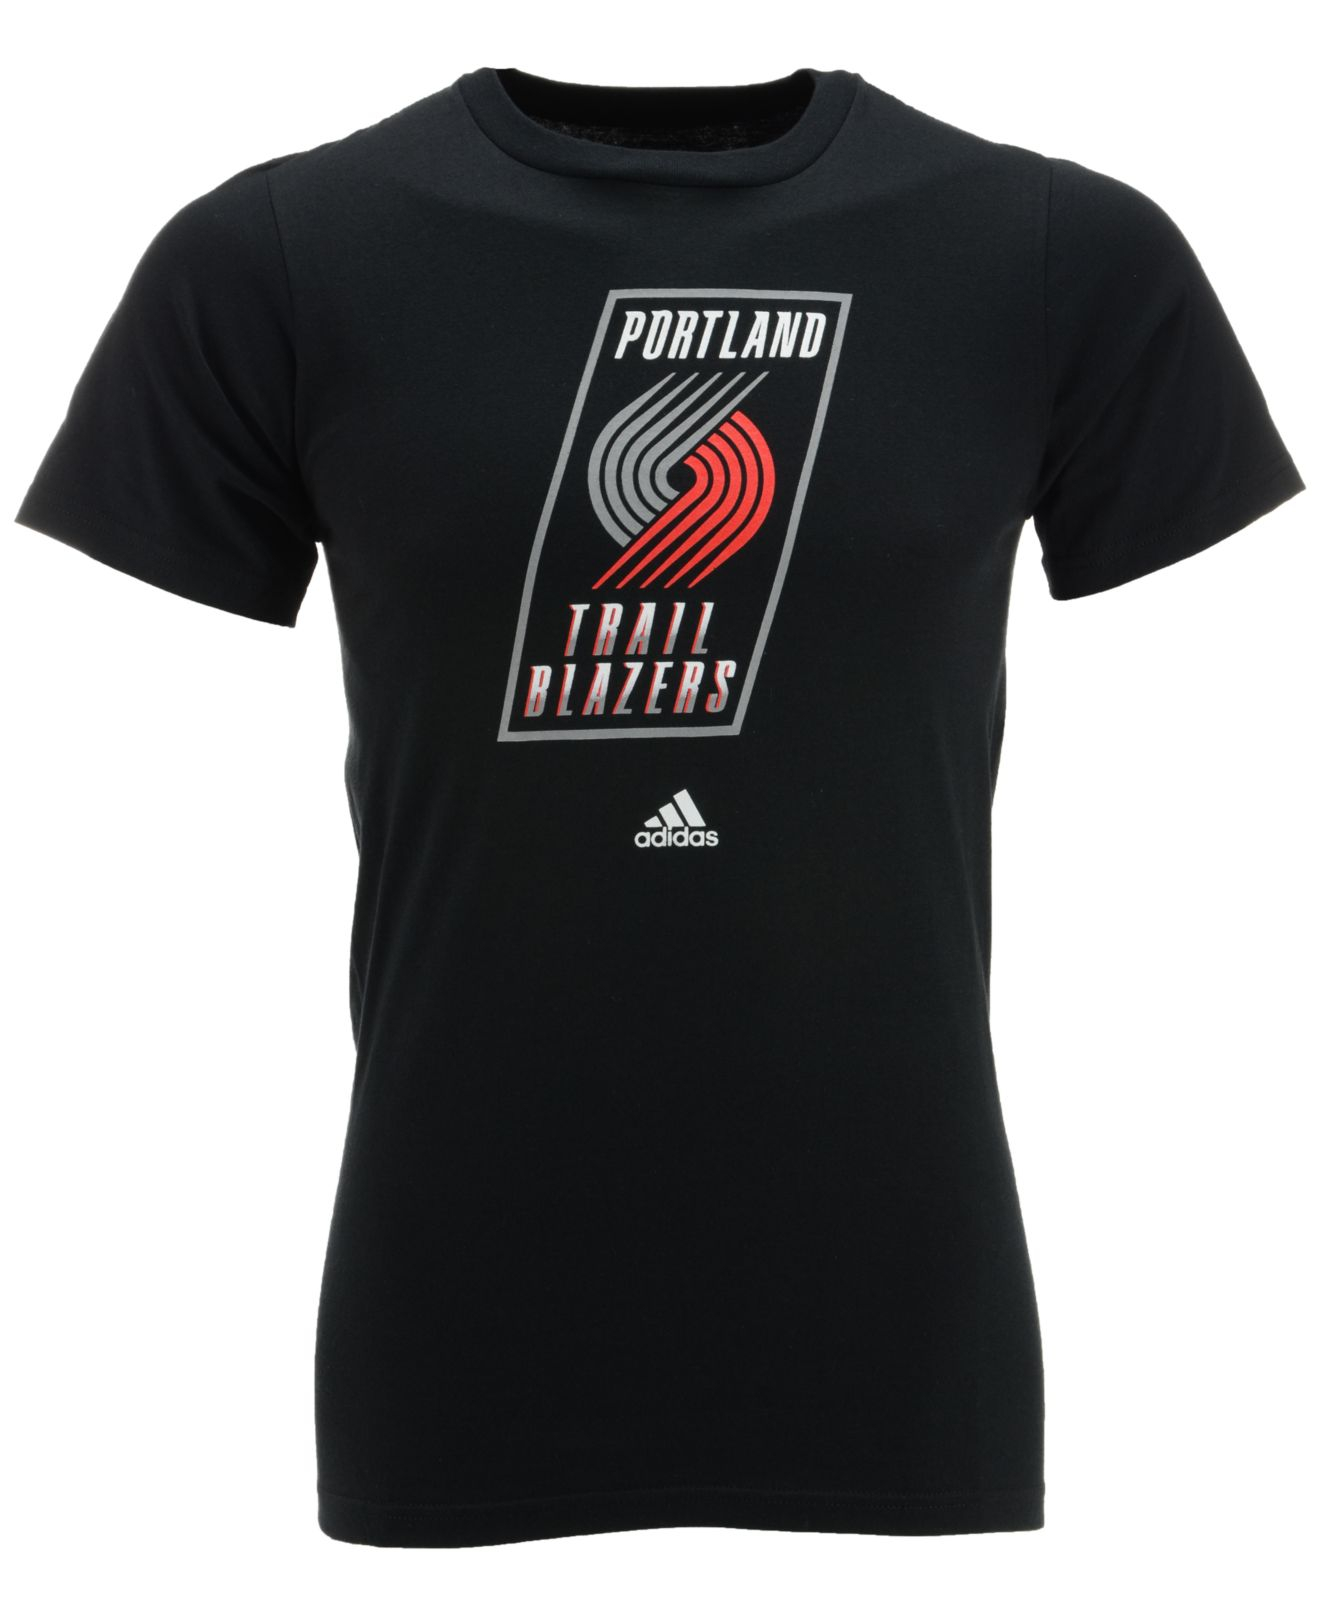 Portland Trail Blazers T Shirt: Adidas Originals Men's Short-sleeve Portland Trail Blazers